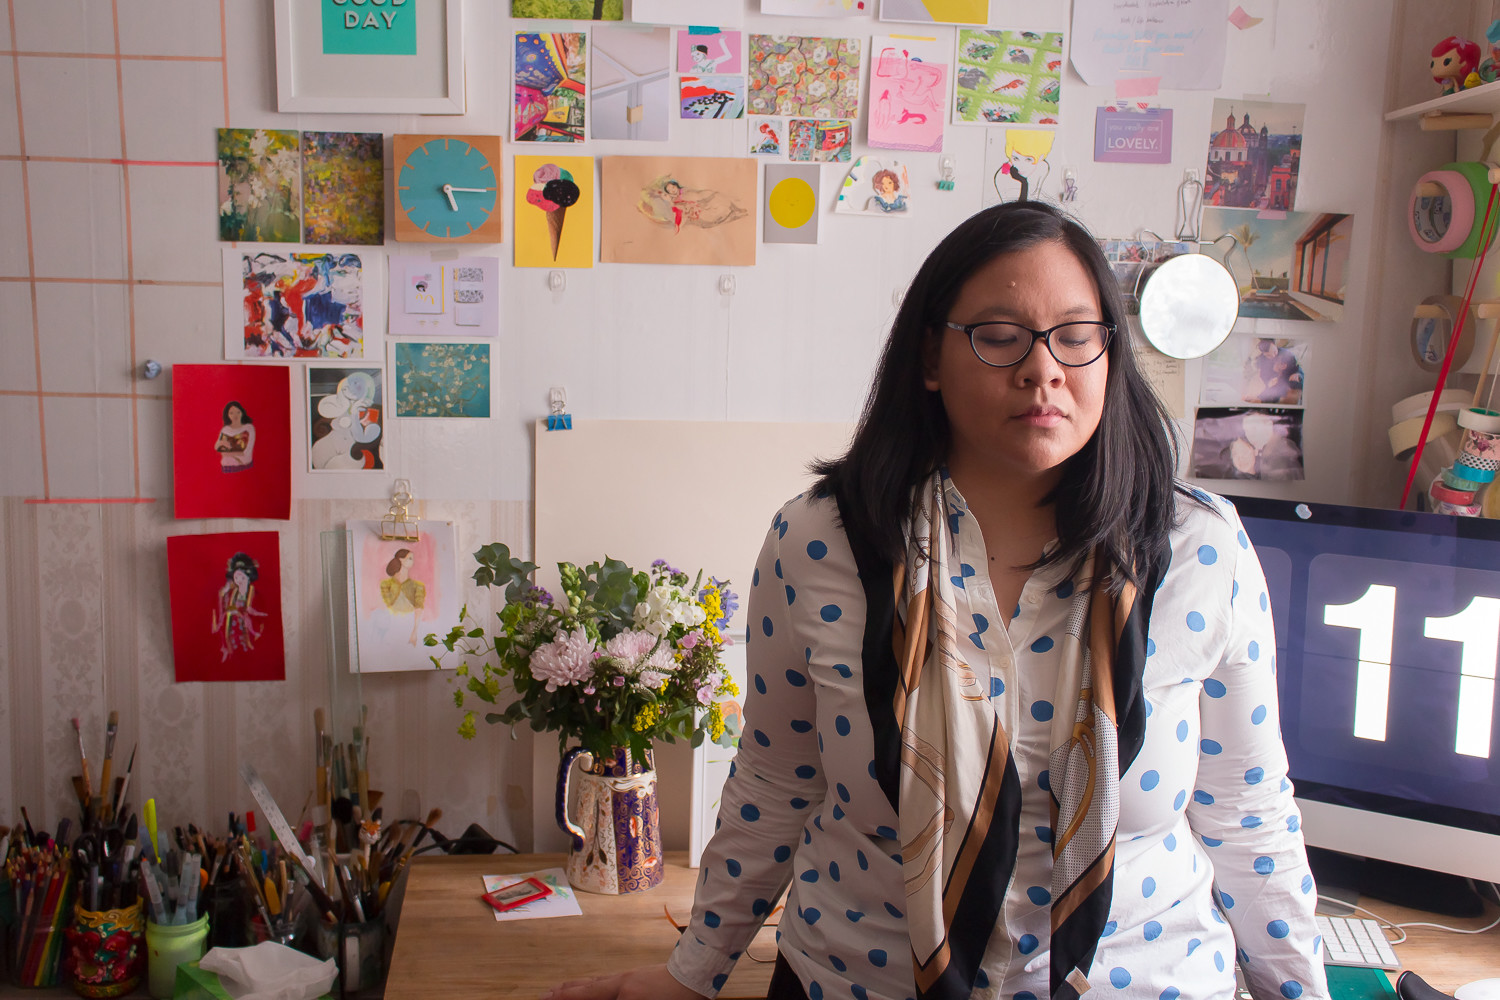 Photo of June Sees at her studio, Spring 2017